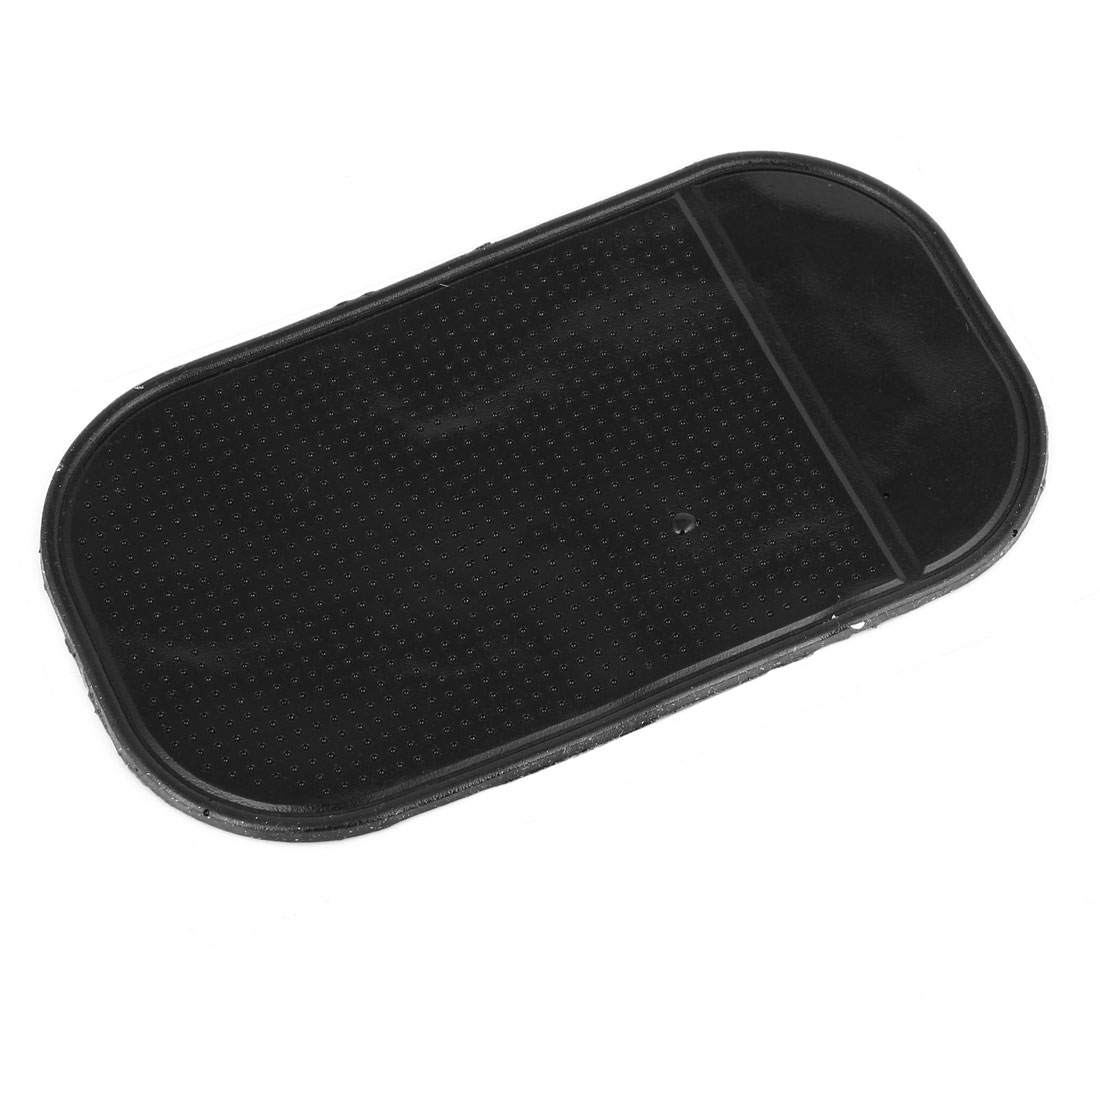 Black Soft Rubber Nonslip Dots Auto Dashboard Phone Holder Pad Mat